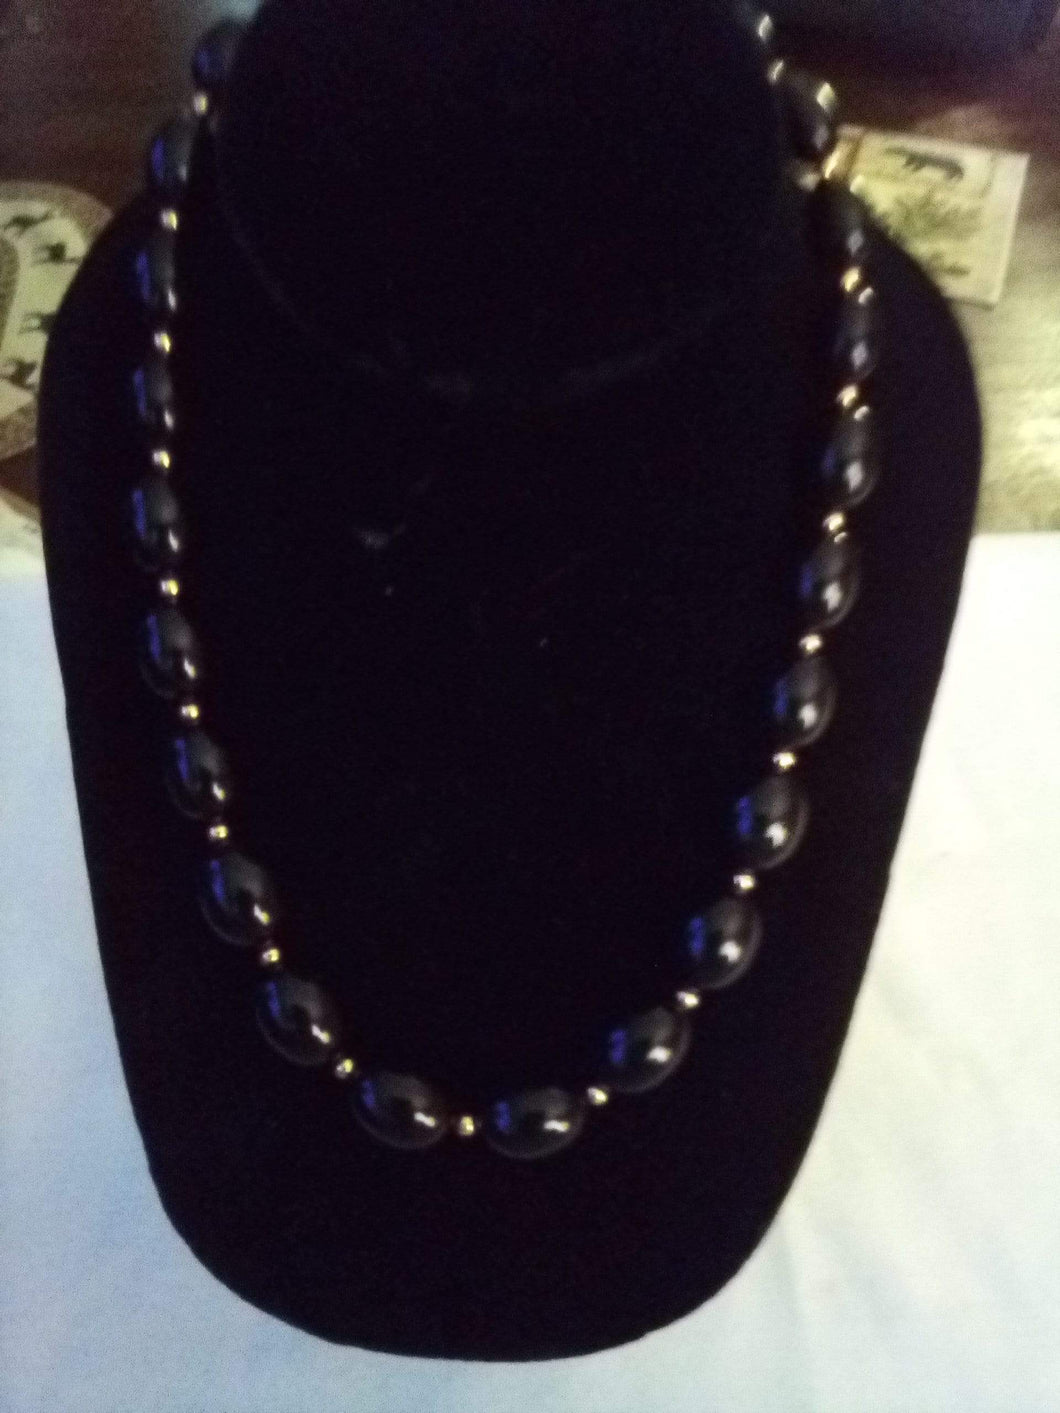 Black beaded necklace - B&P'sringsnthings